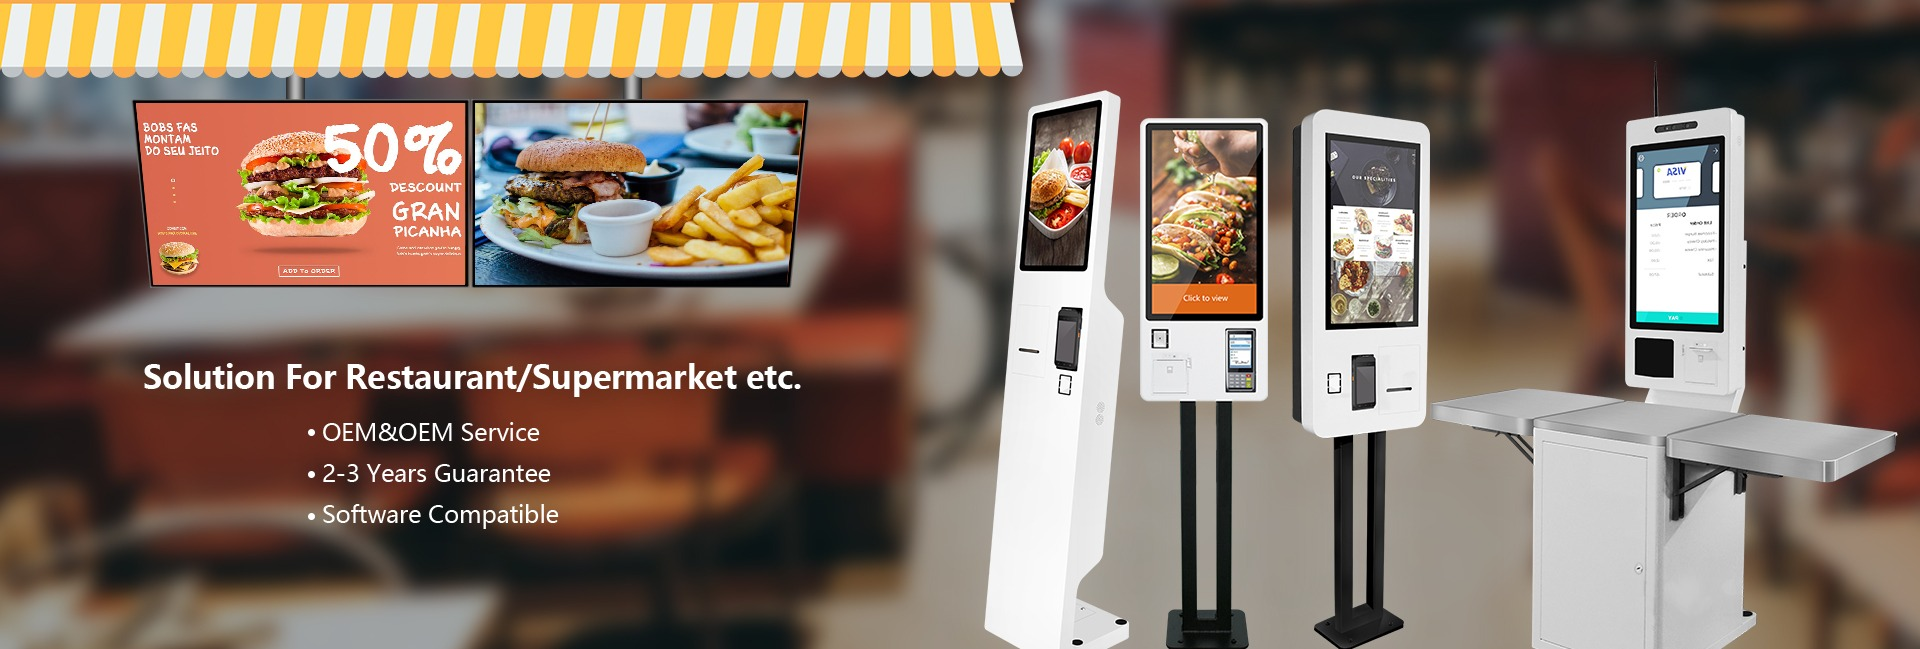 food online order Digital Screens and self order kiosk